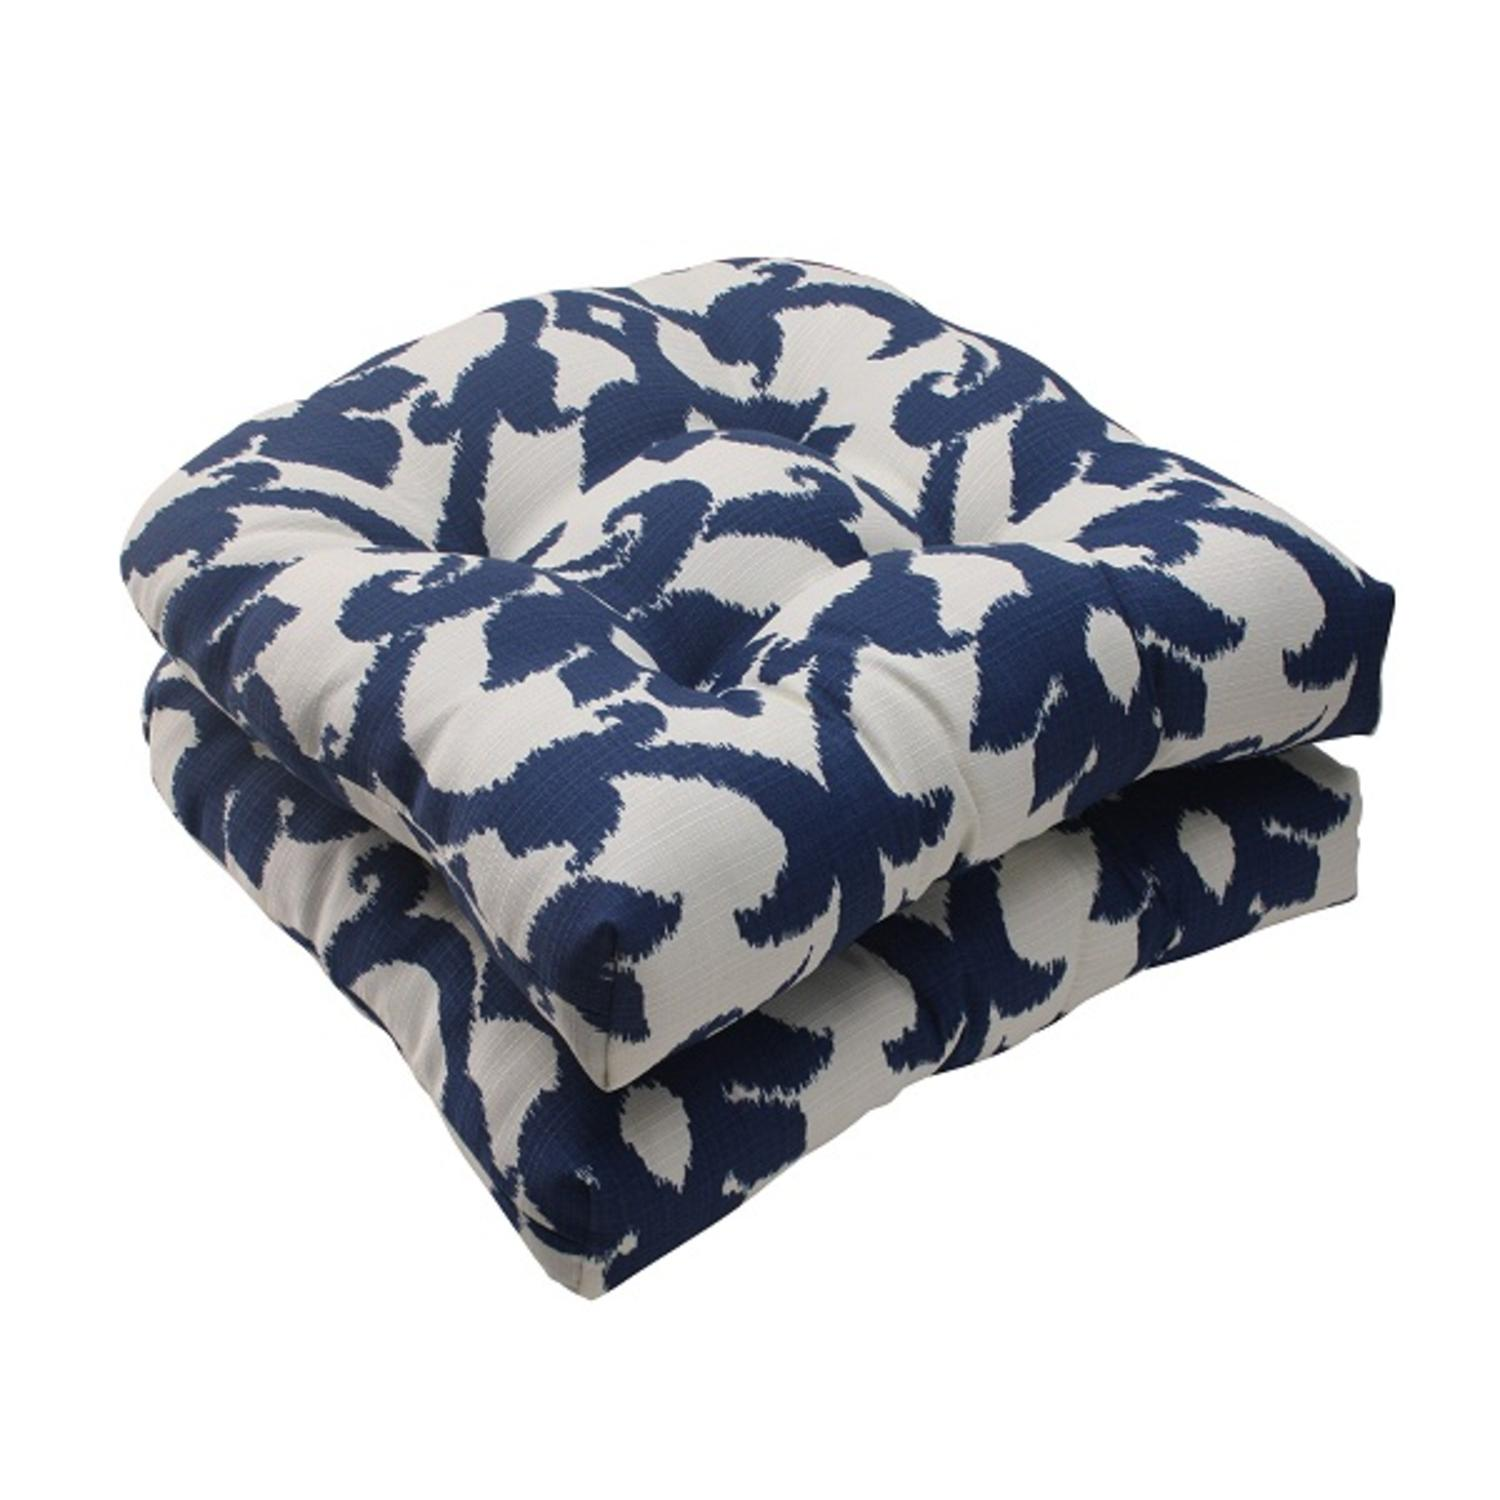 Set of 2 Navy Victorial Floral Outdoor Patio Tufted Wicker Seat Cushions 19""